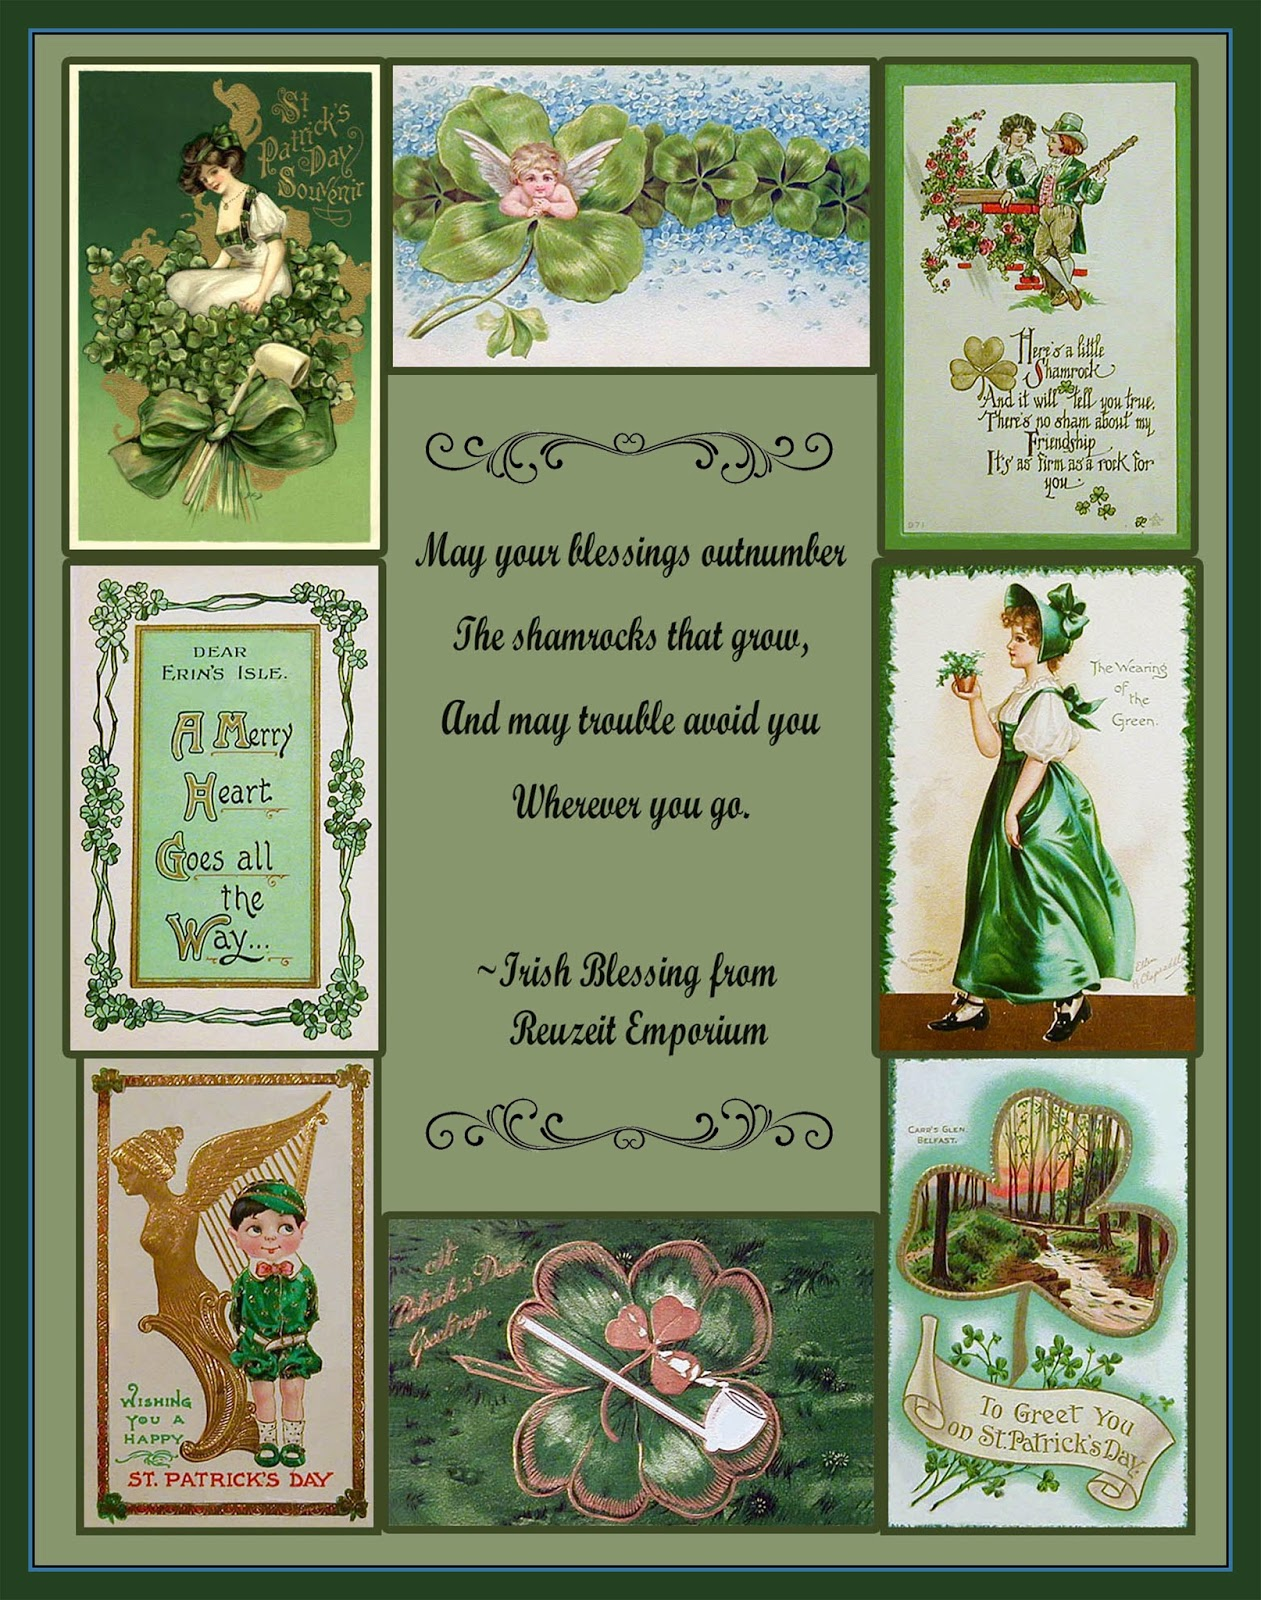 http://www.reuzeitmn.com/post-cards/holiday/st-patrick-s-day